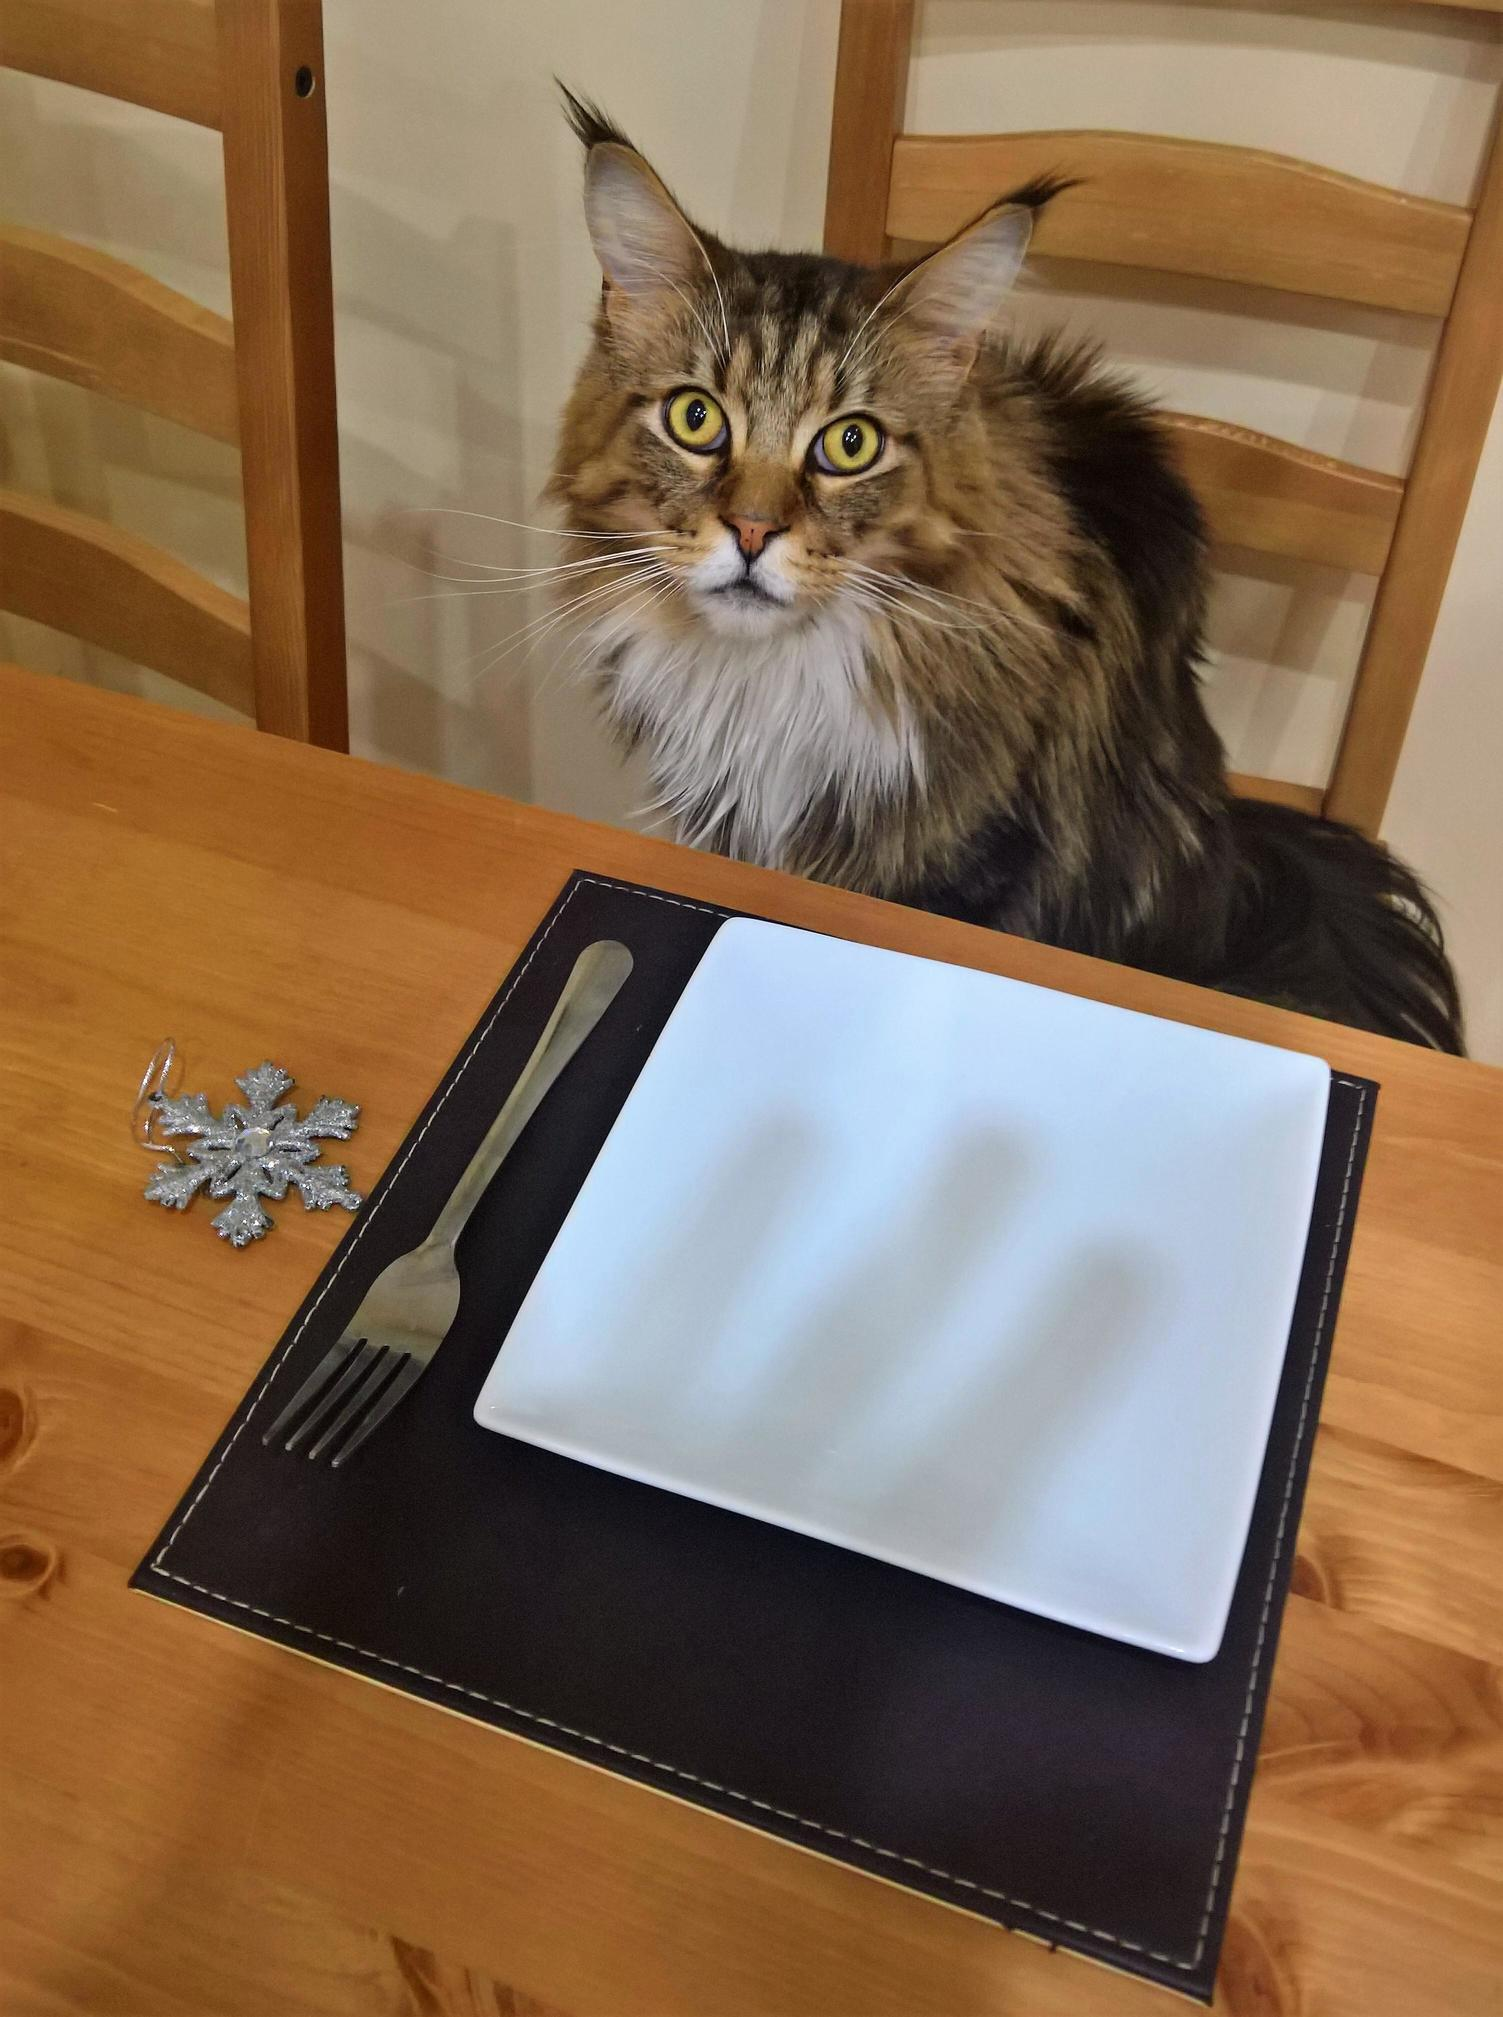 Wheres my pre christmas meal human leon 3 years old maine coon